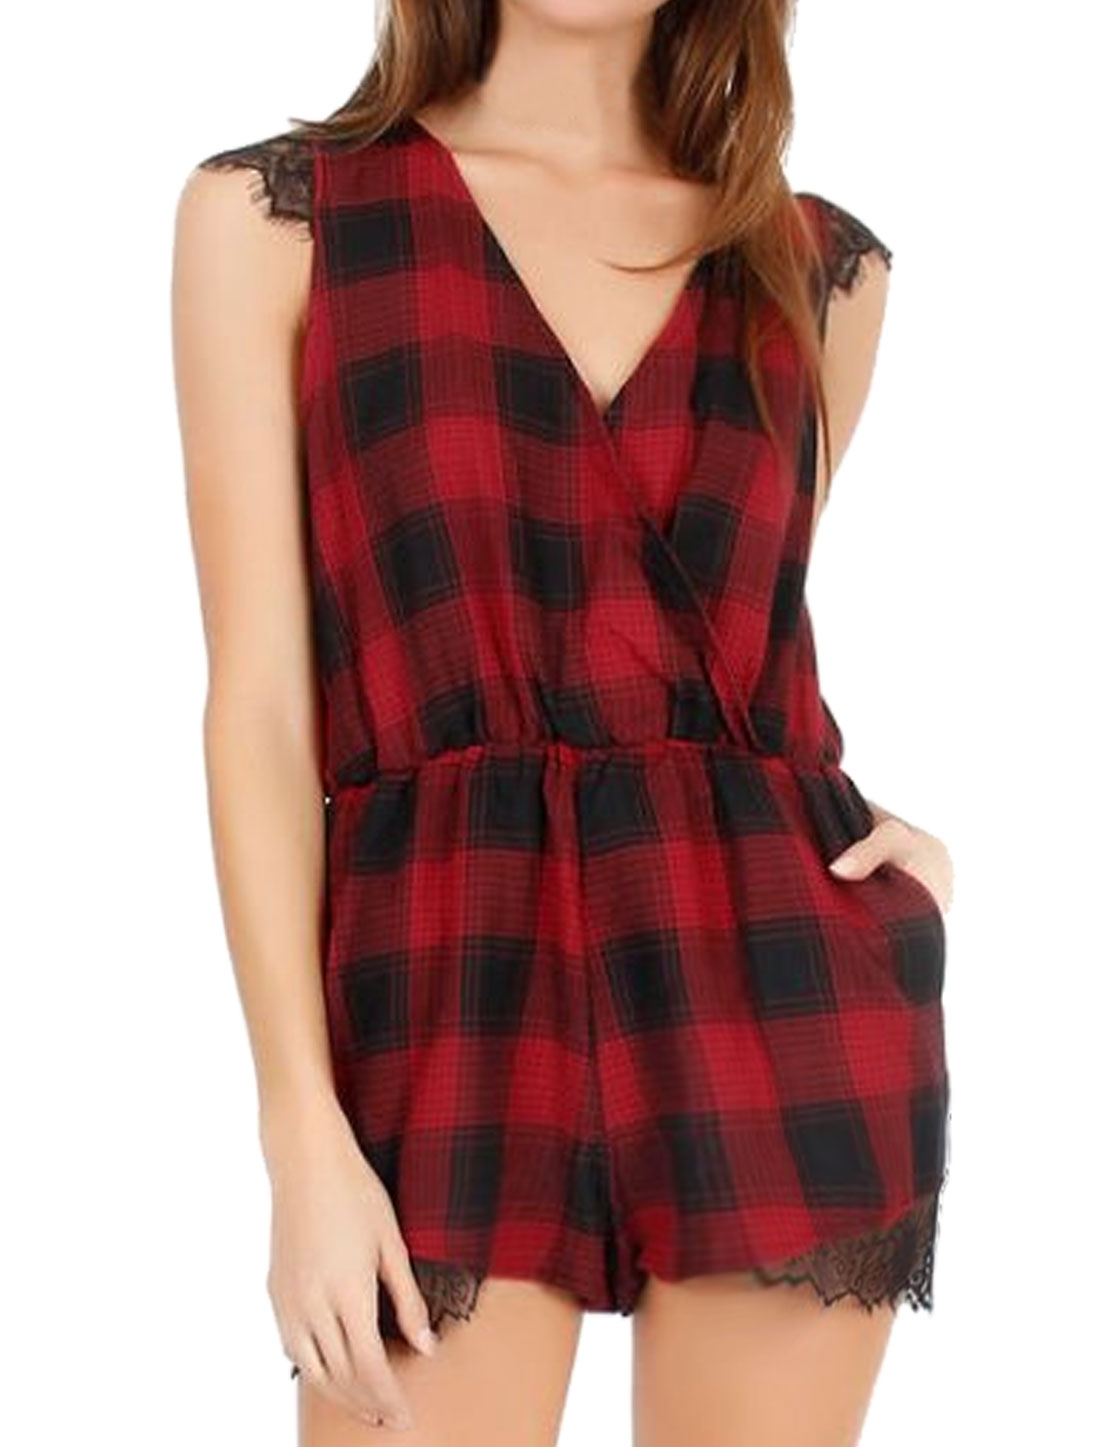 Women Sleeveless Crossover V Neck Lace Panel Plaids Romper Red M